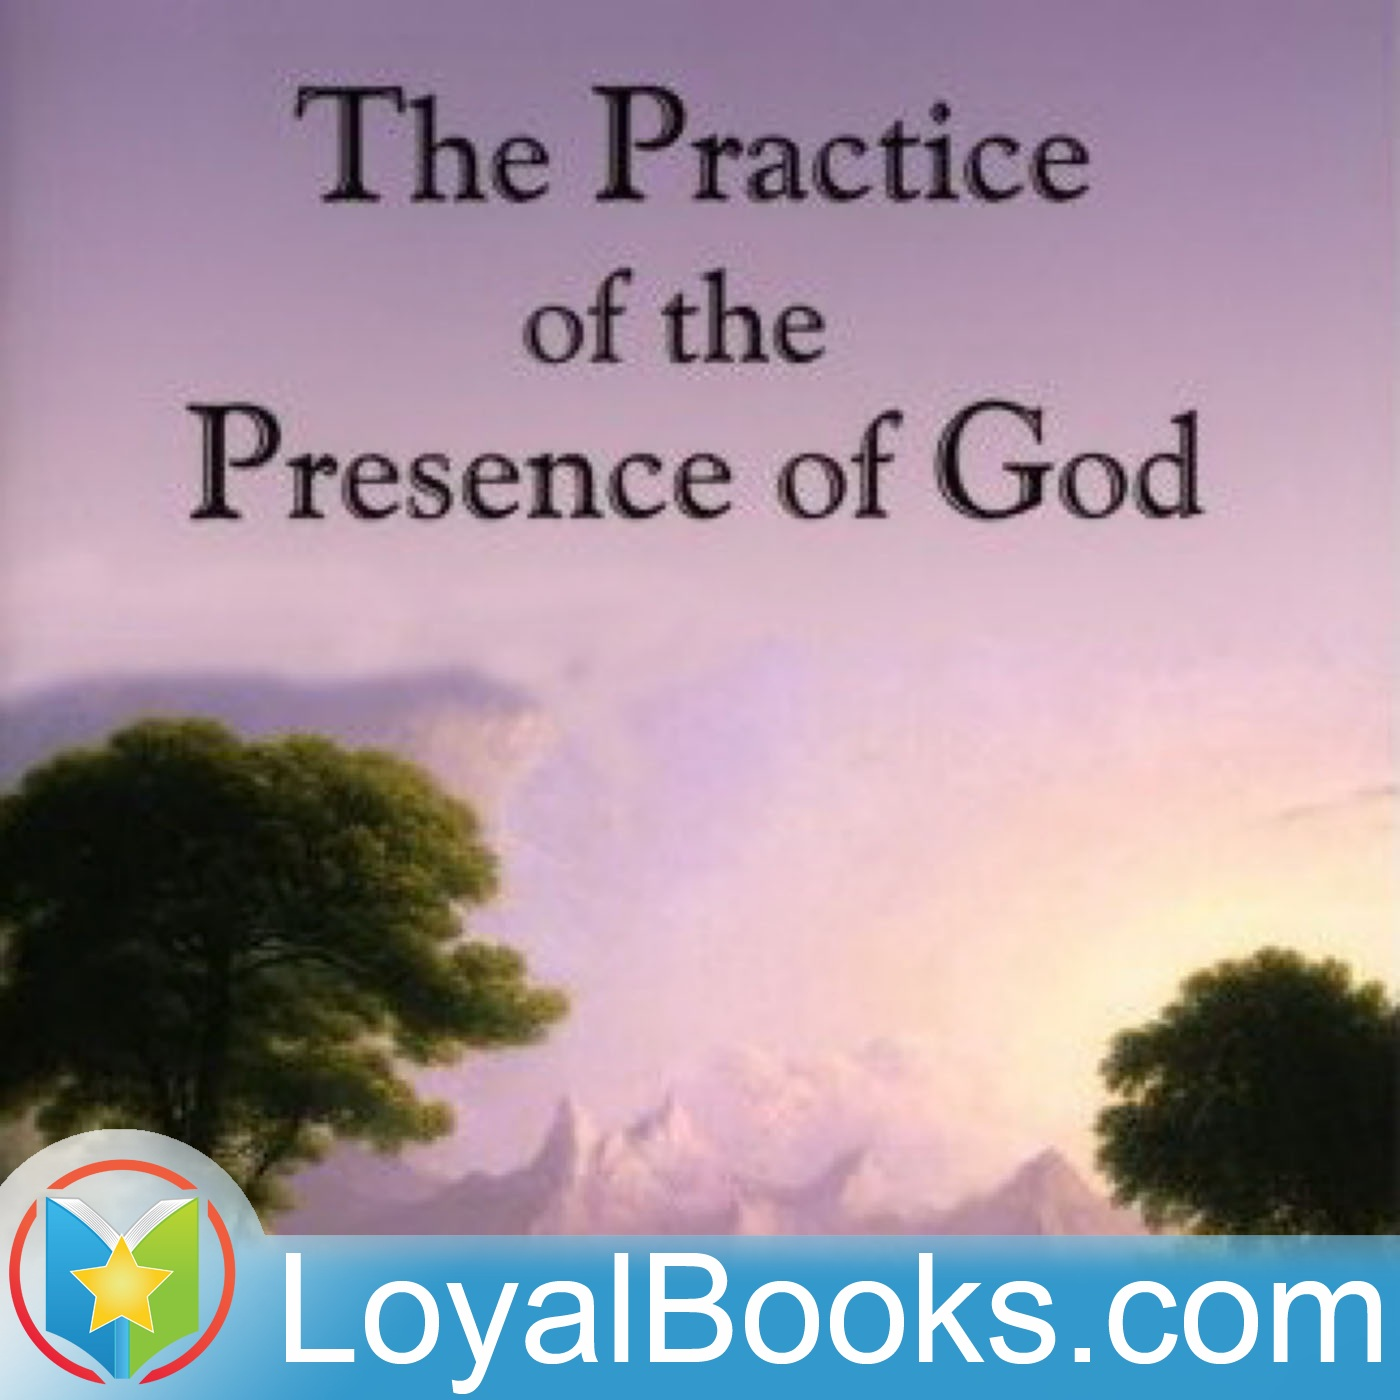 <![CDATA[The Practice of the Presence of God by Brother Lawrence]]>